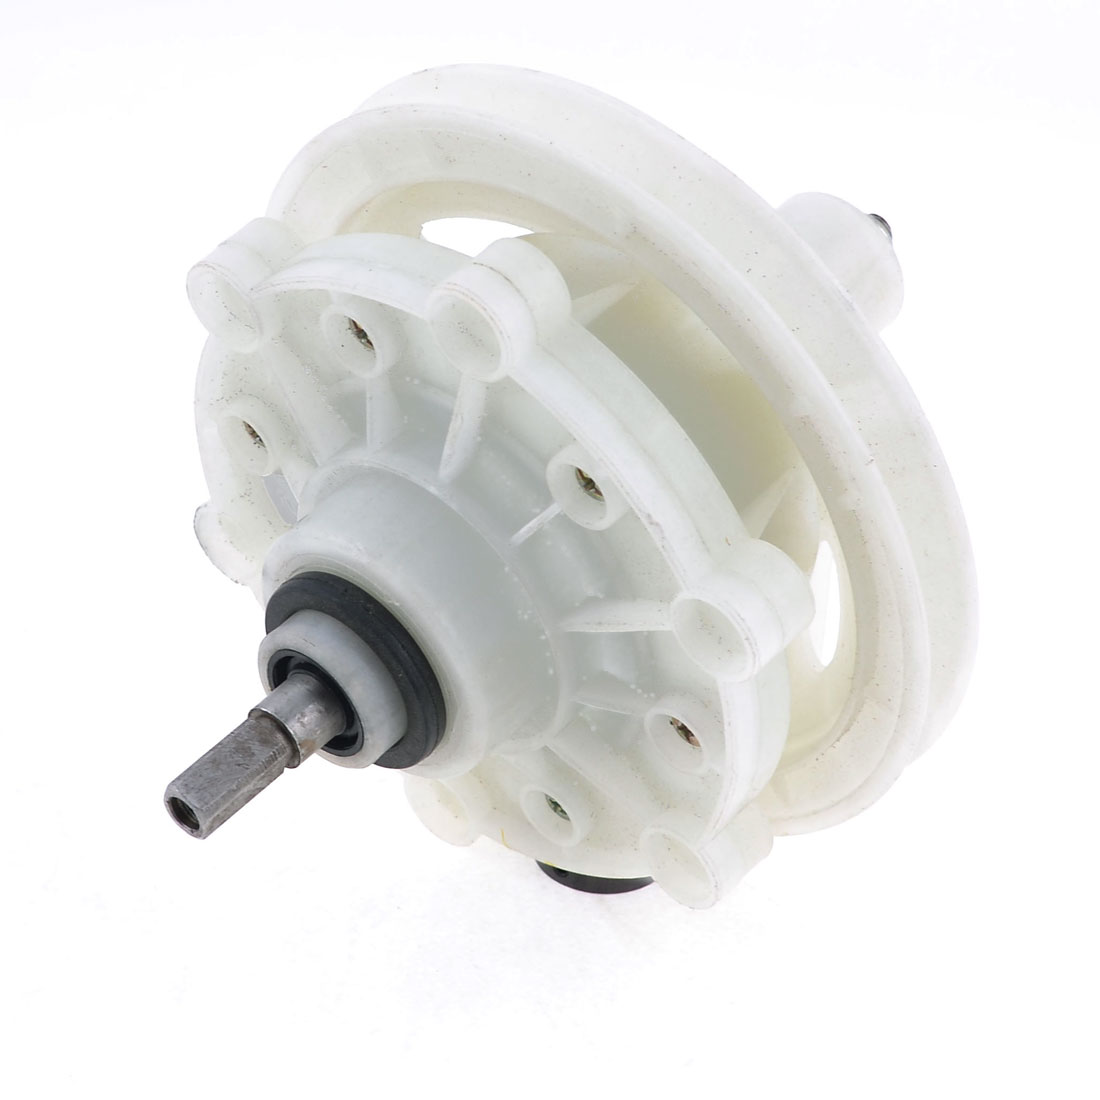 22mm Length Square Shaft Washing Machine Part Gear Box Reducer Off White